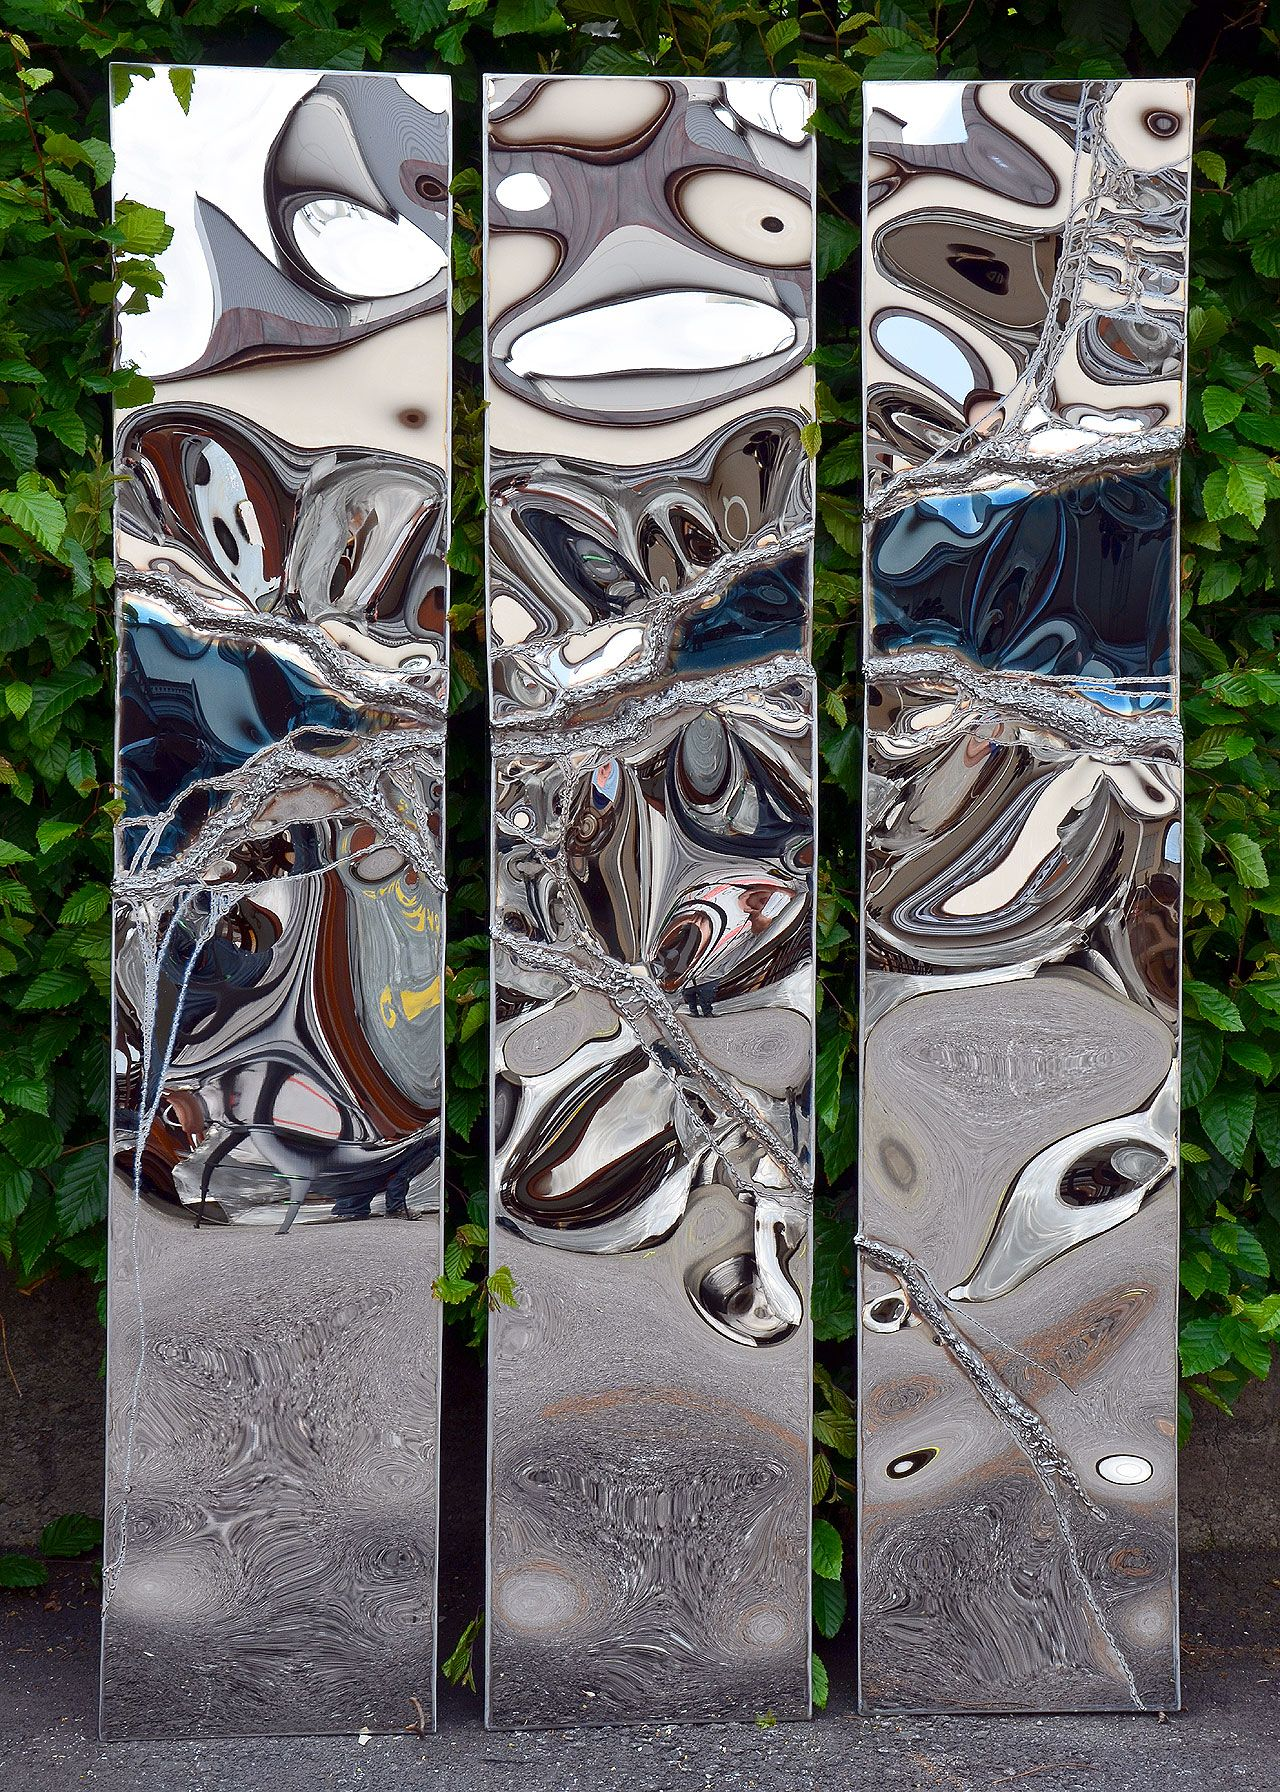 Polished Stainless Steel Art Stainless Steel Art Stainless Steel Wall Art Steel Art